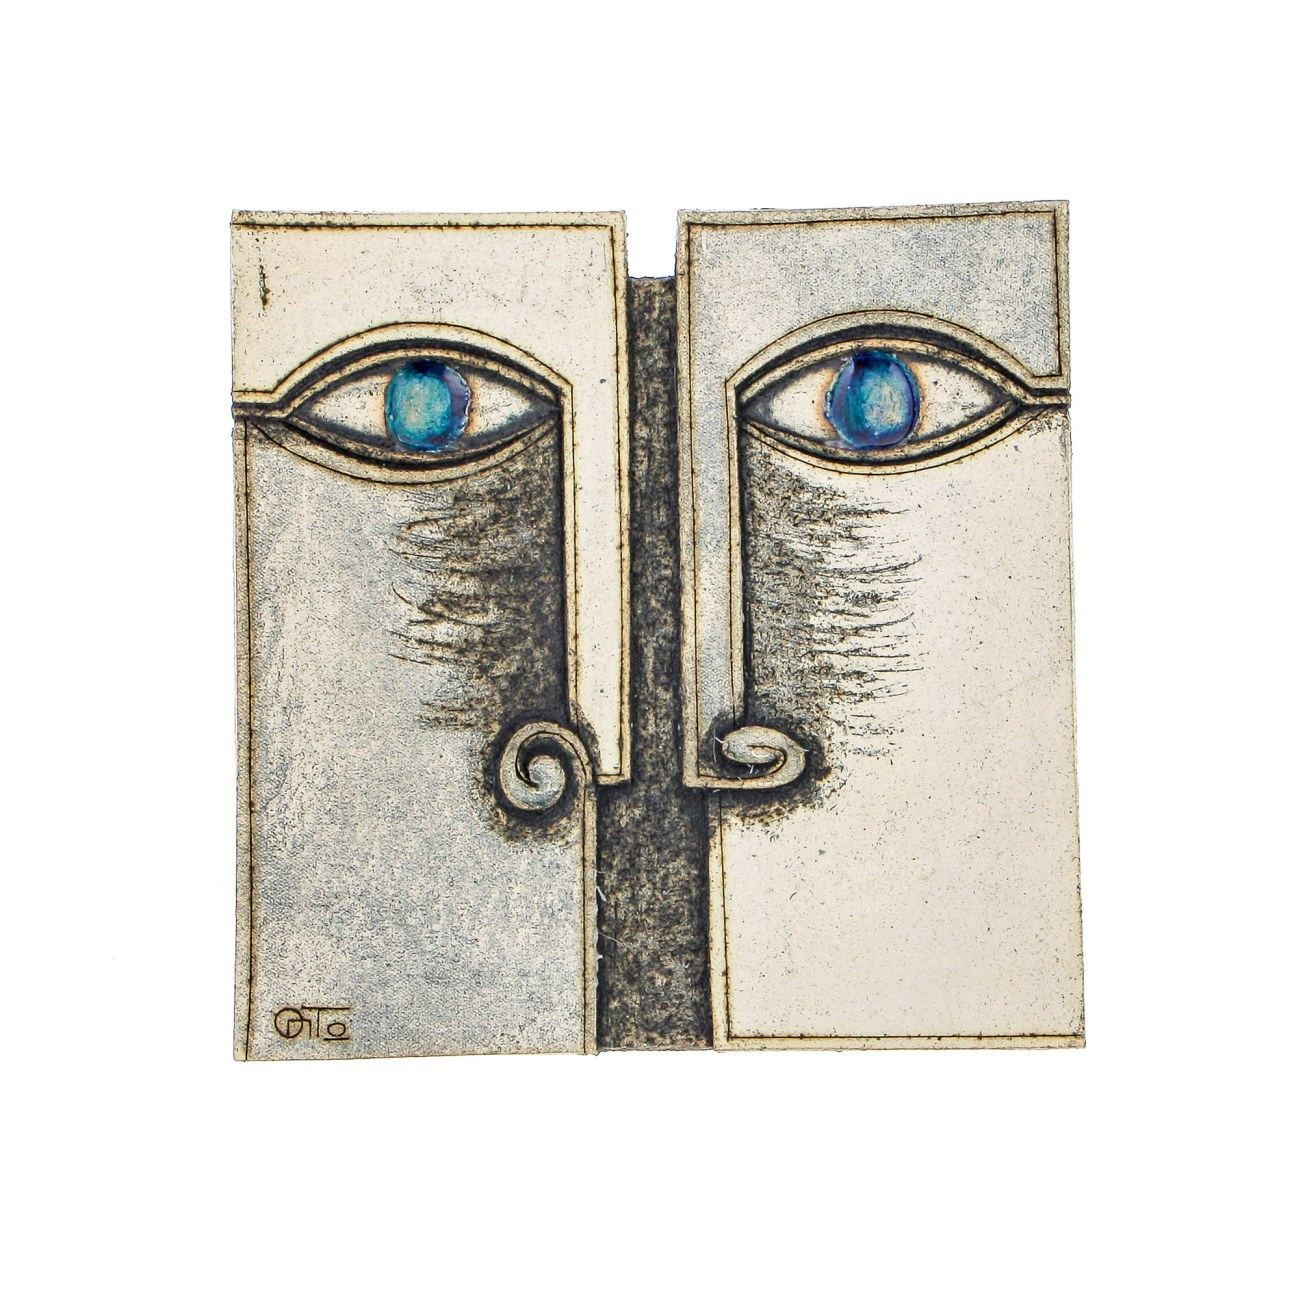 Square Decorative Plate Handmade Ceramic Archaic Face Design for Table or Wall Design A  sc 1 st  Pinterest & Square Decorative Plate Handmade Ceramic Archaic Face Design for ...